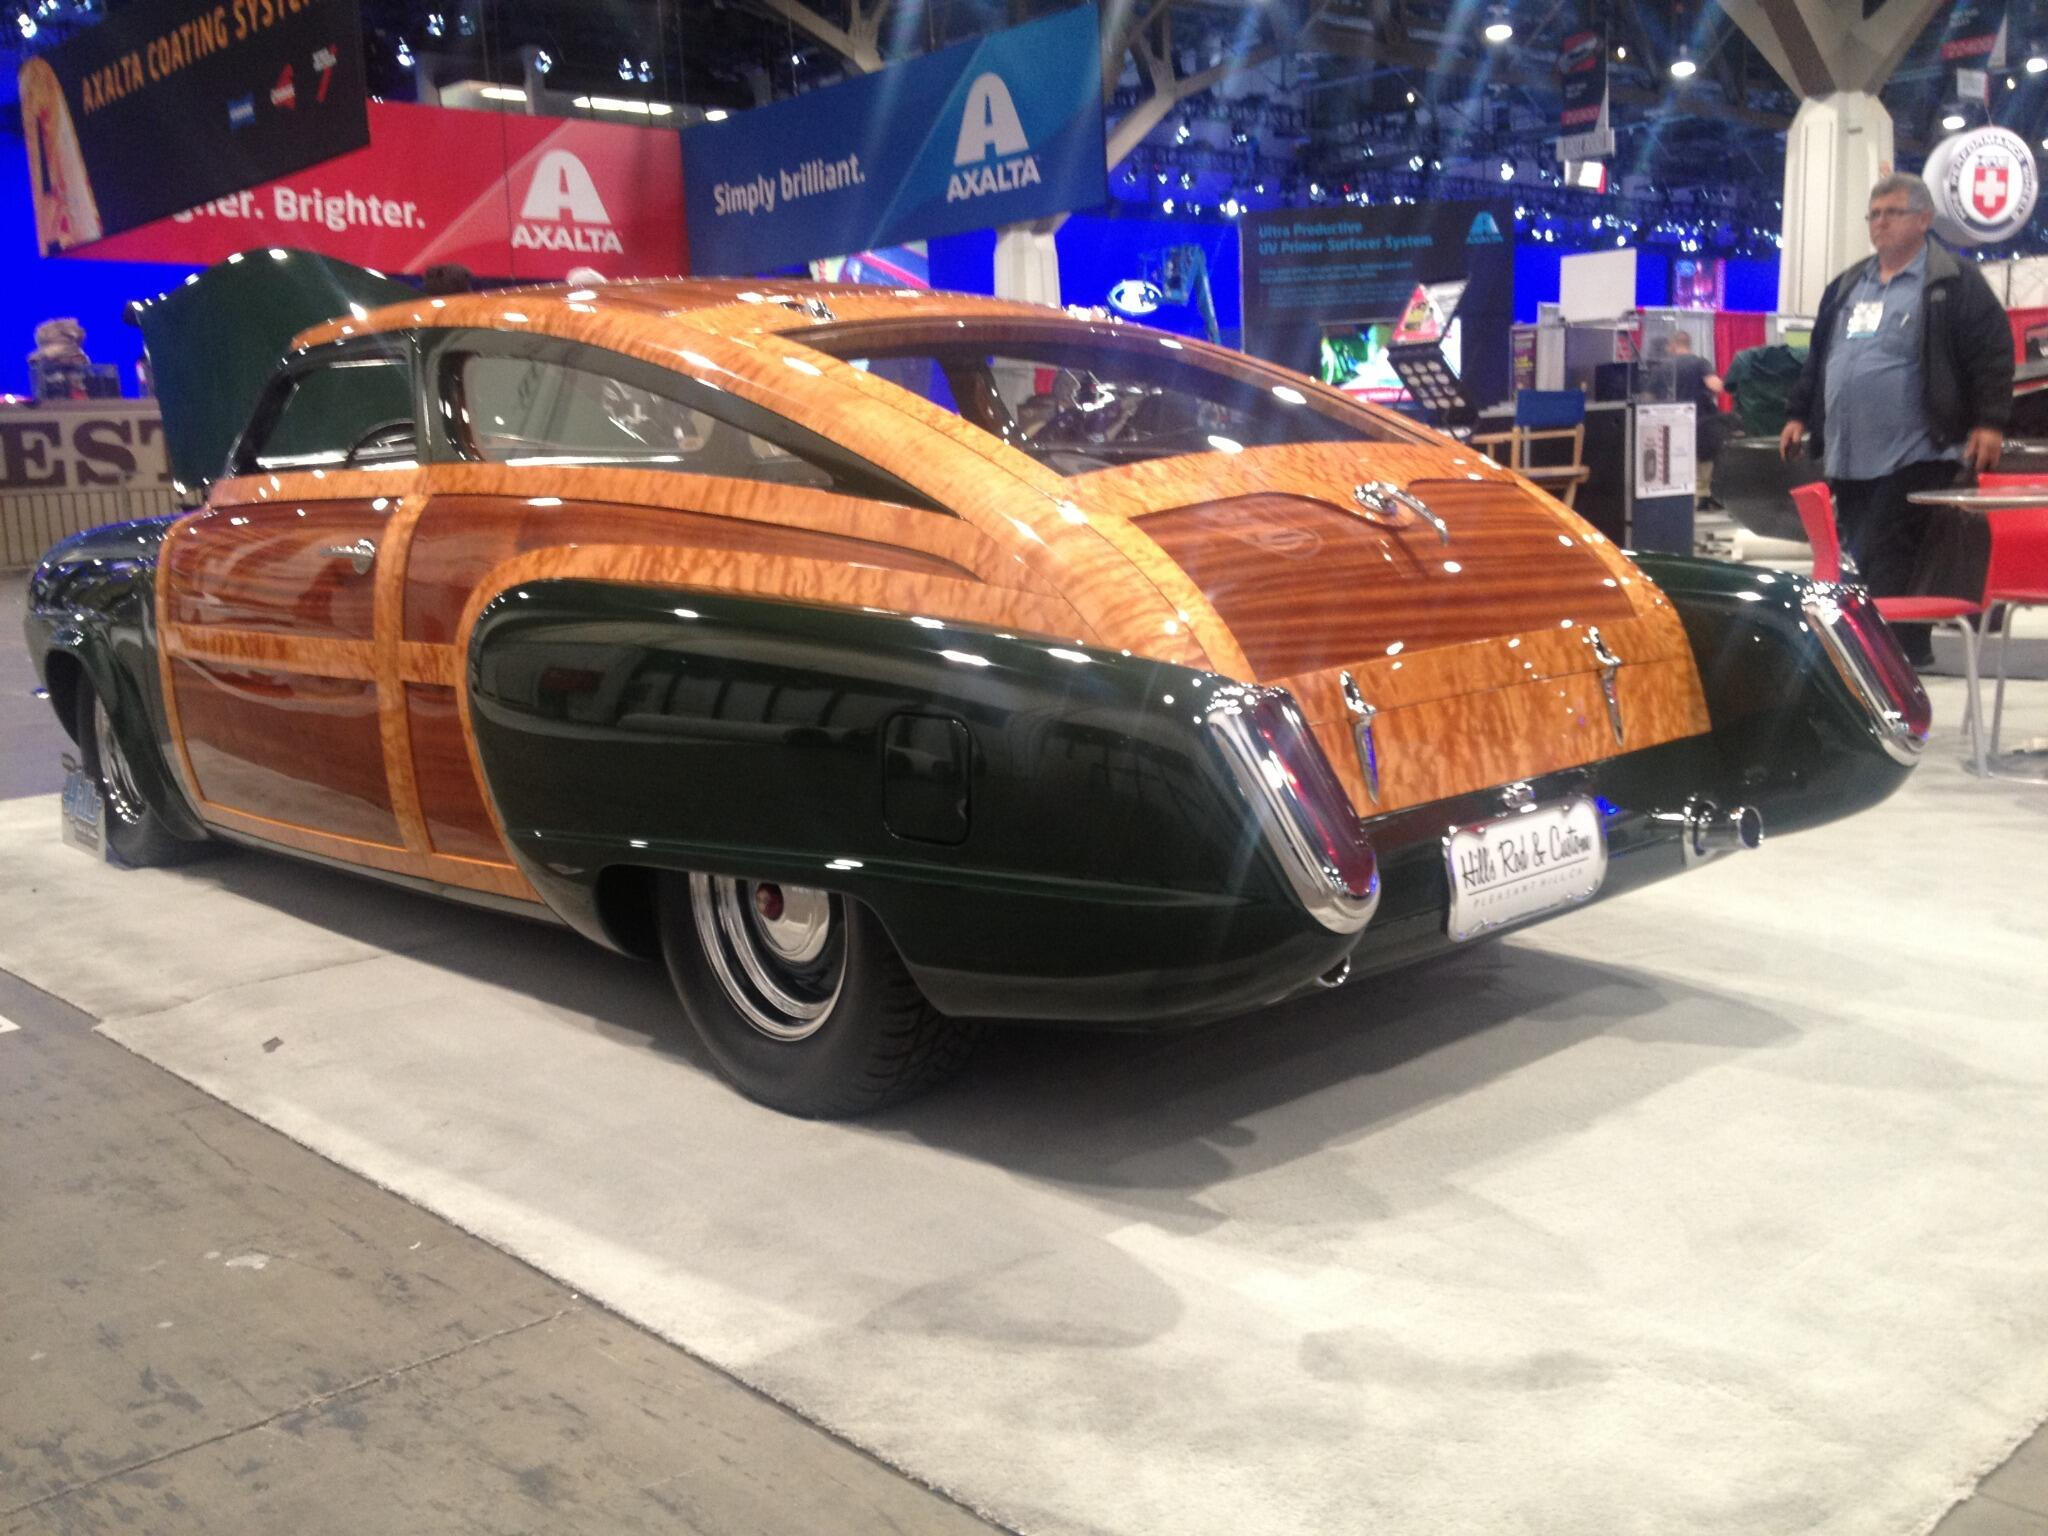 Another wonderful afternoon at the 2013 SEMA Show. Tomorrow promises to be another great day. #SEMA2013 http://t.co/GZ0RS5a7e1